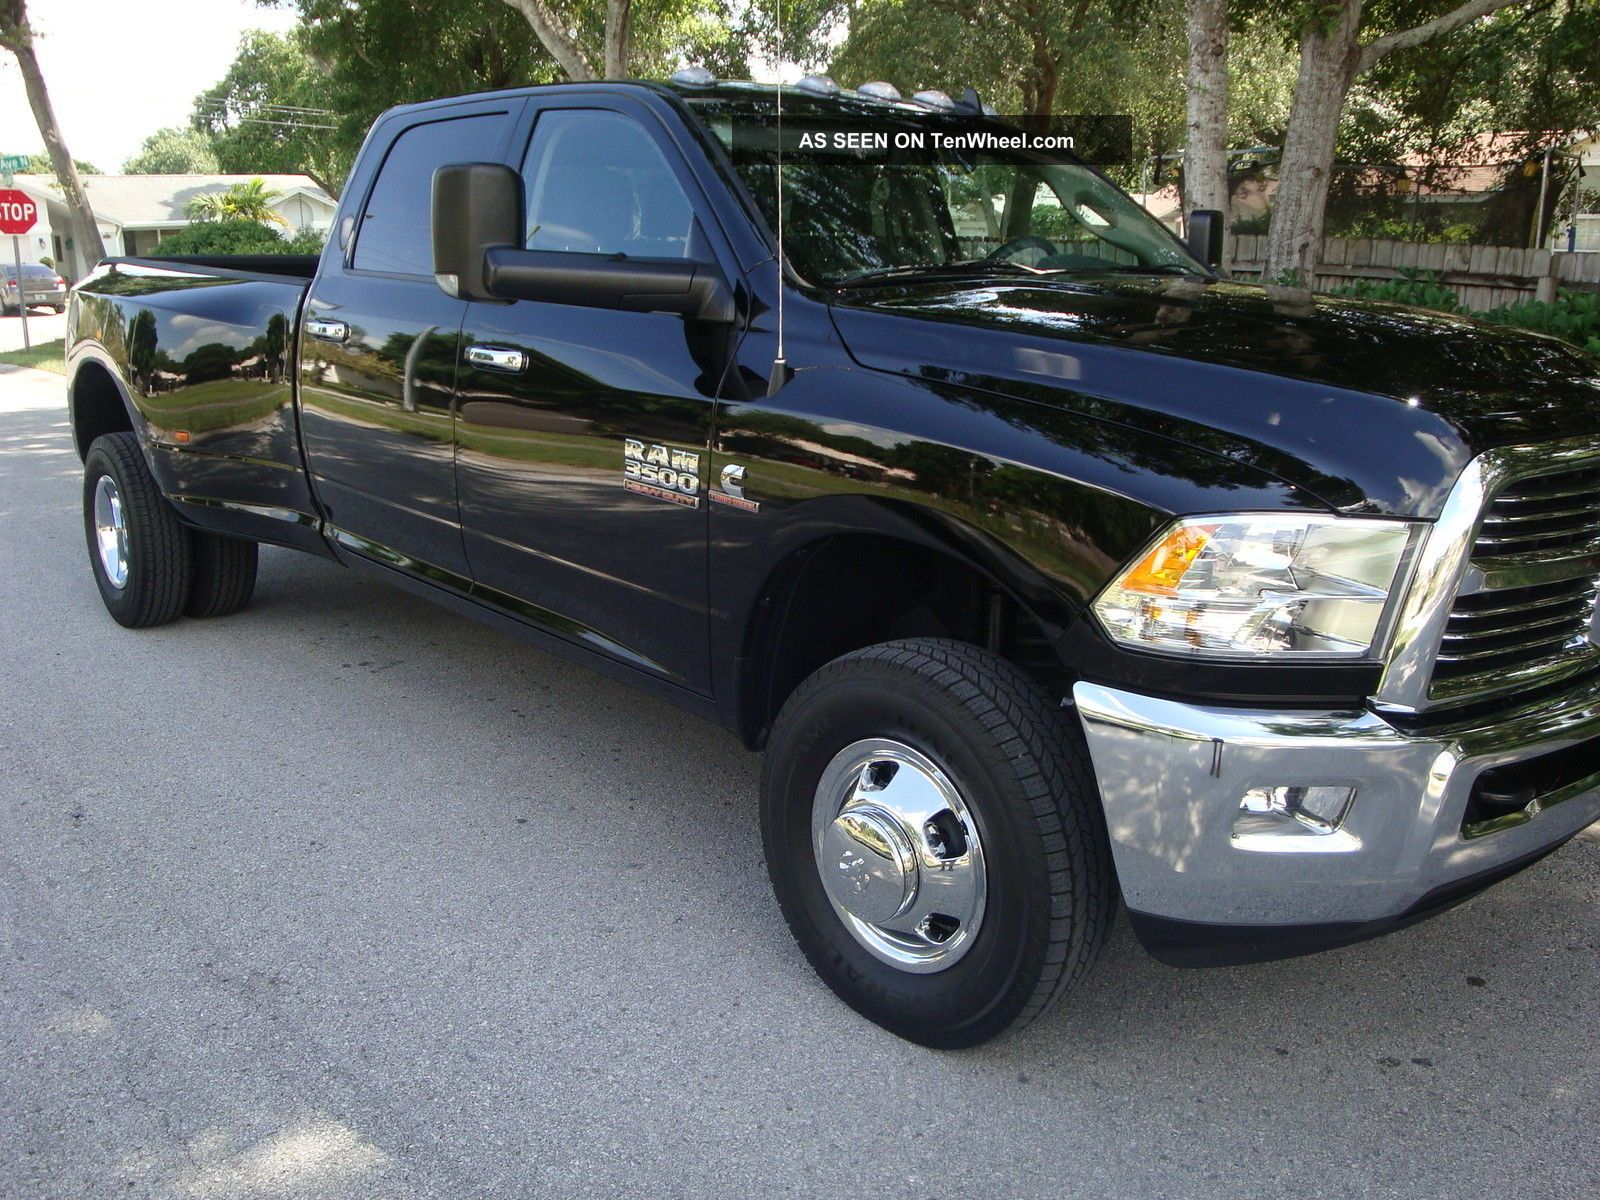 2014 Dodge Ram 3500 Crew Cab Aisin Trans 4x4 Cummins Crew Cab Big Horn Package